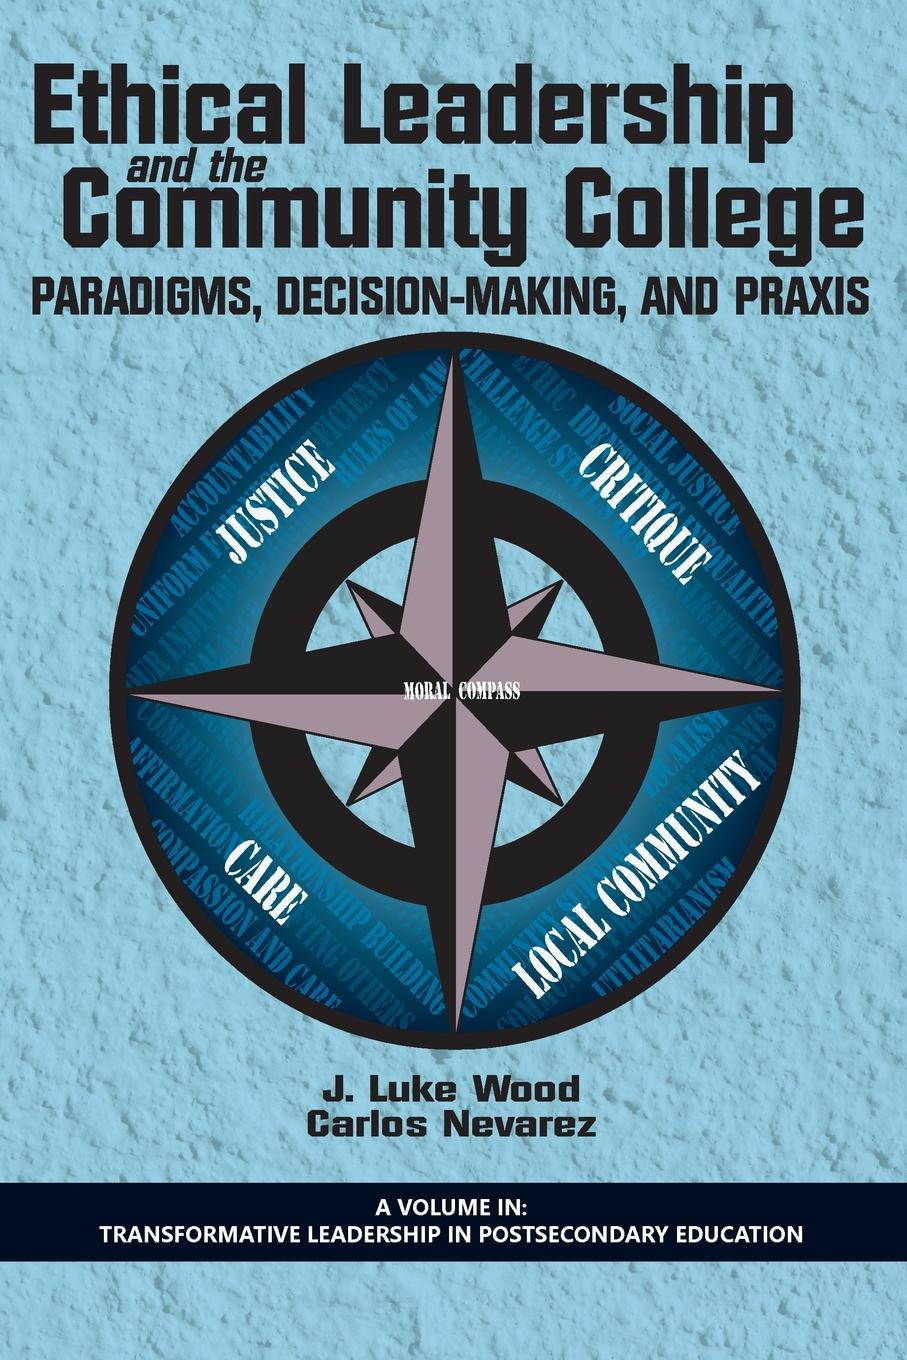 Ethical Leadership and the Community College. Paradigms, Decision-Making, and Praxis